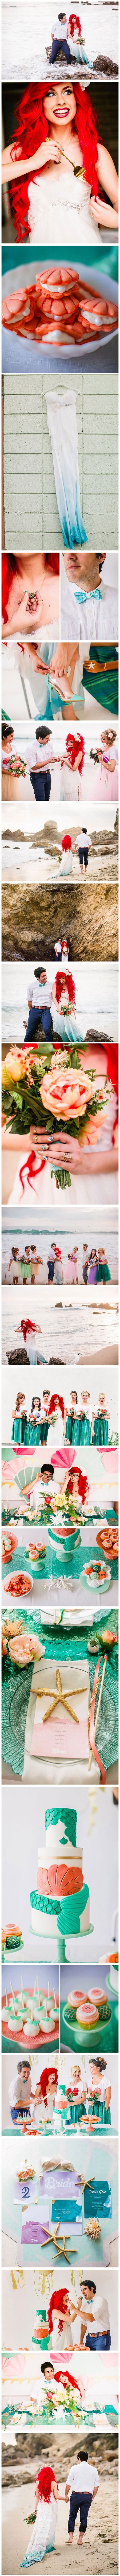 As children, many of us dreamed of having a perfect Disney princess wedding, or even of being a cute little mermaid like Ariel. So when the Your Cloud Parade online wedding marketplace teamed up with designer Traci Hines (Ariel) and model Leo Camacho (Prince Eric) to create the perfect replica of our childhood fantasy, we were all more than impressed.